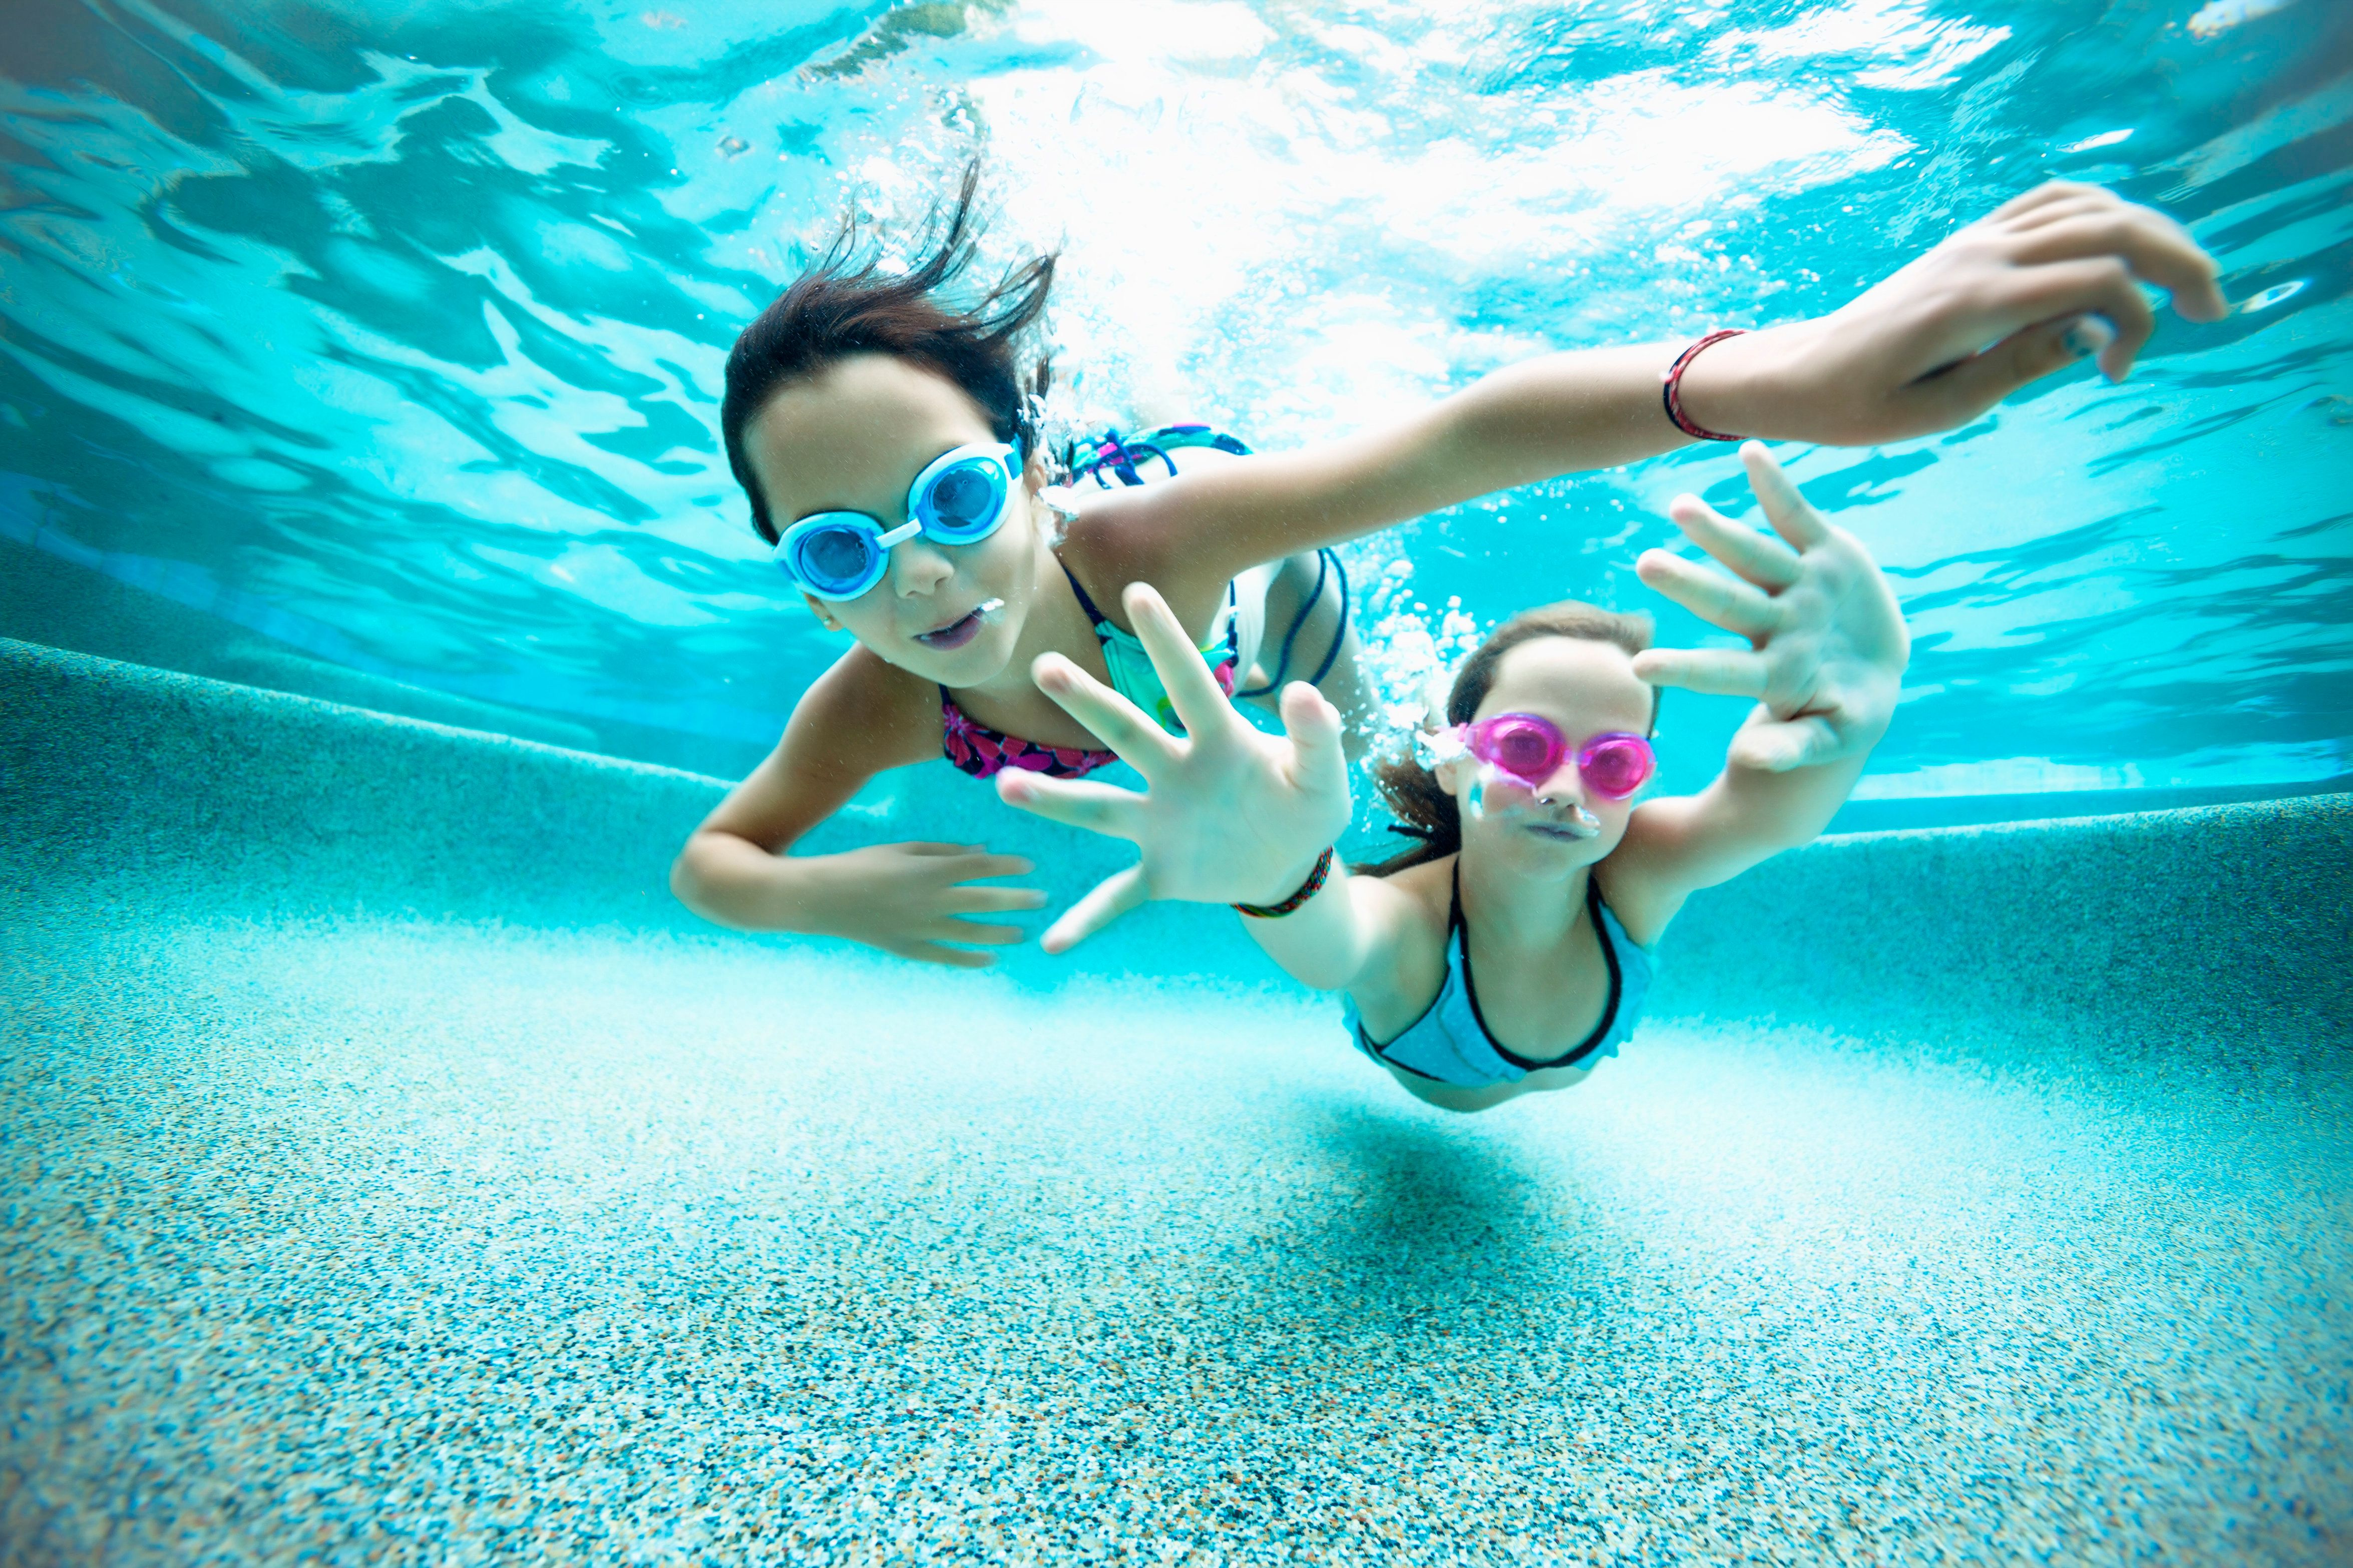 Two young girls underwater